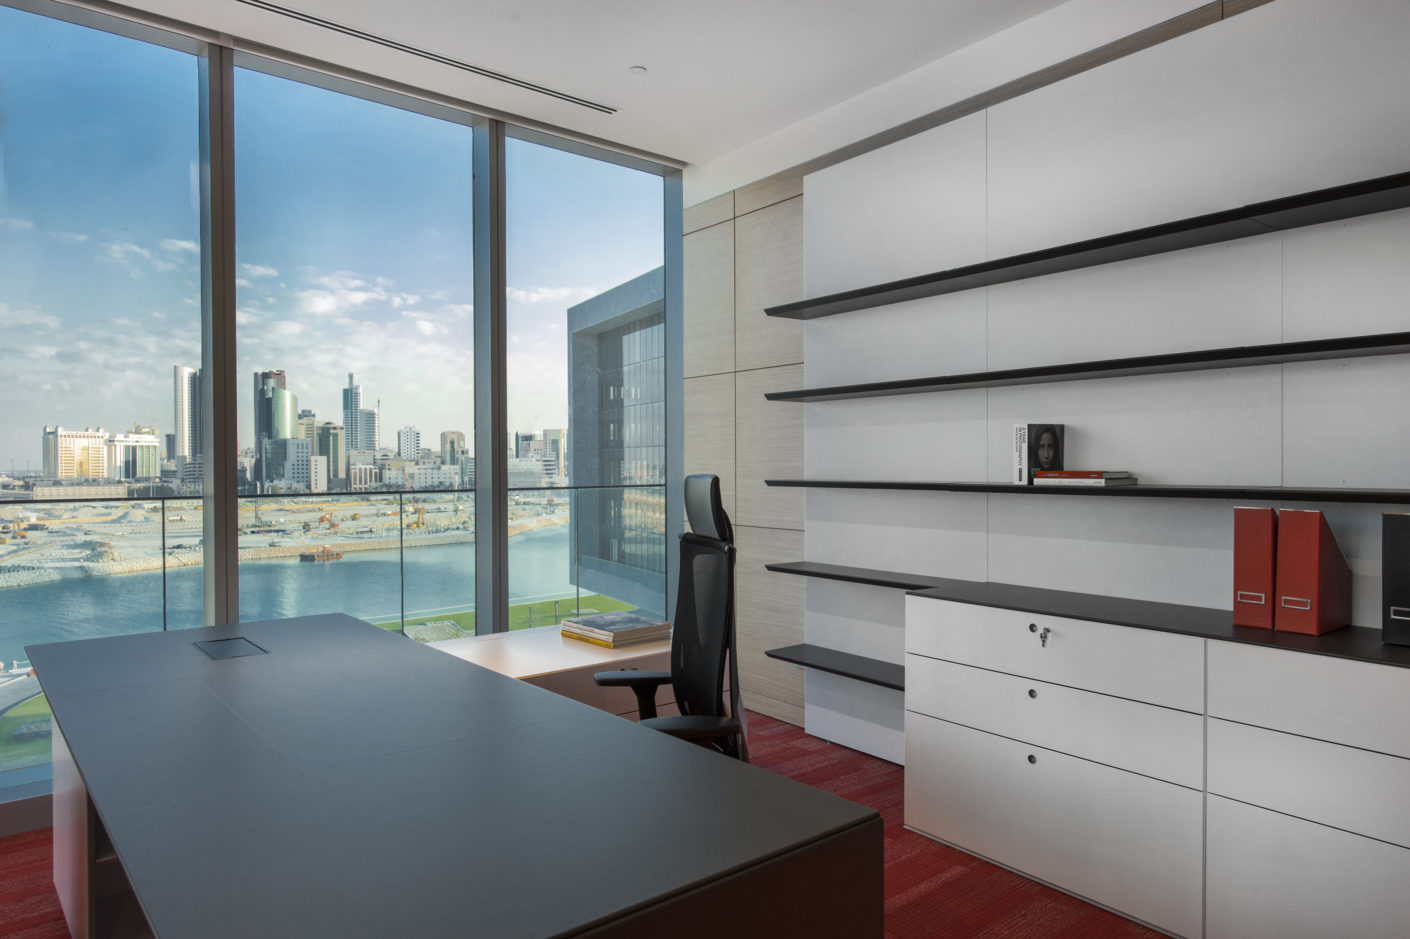 An individual office in the new headquarters of the Al Baraka banking group in Bahrain with a view of the skyline.